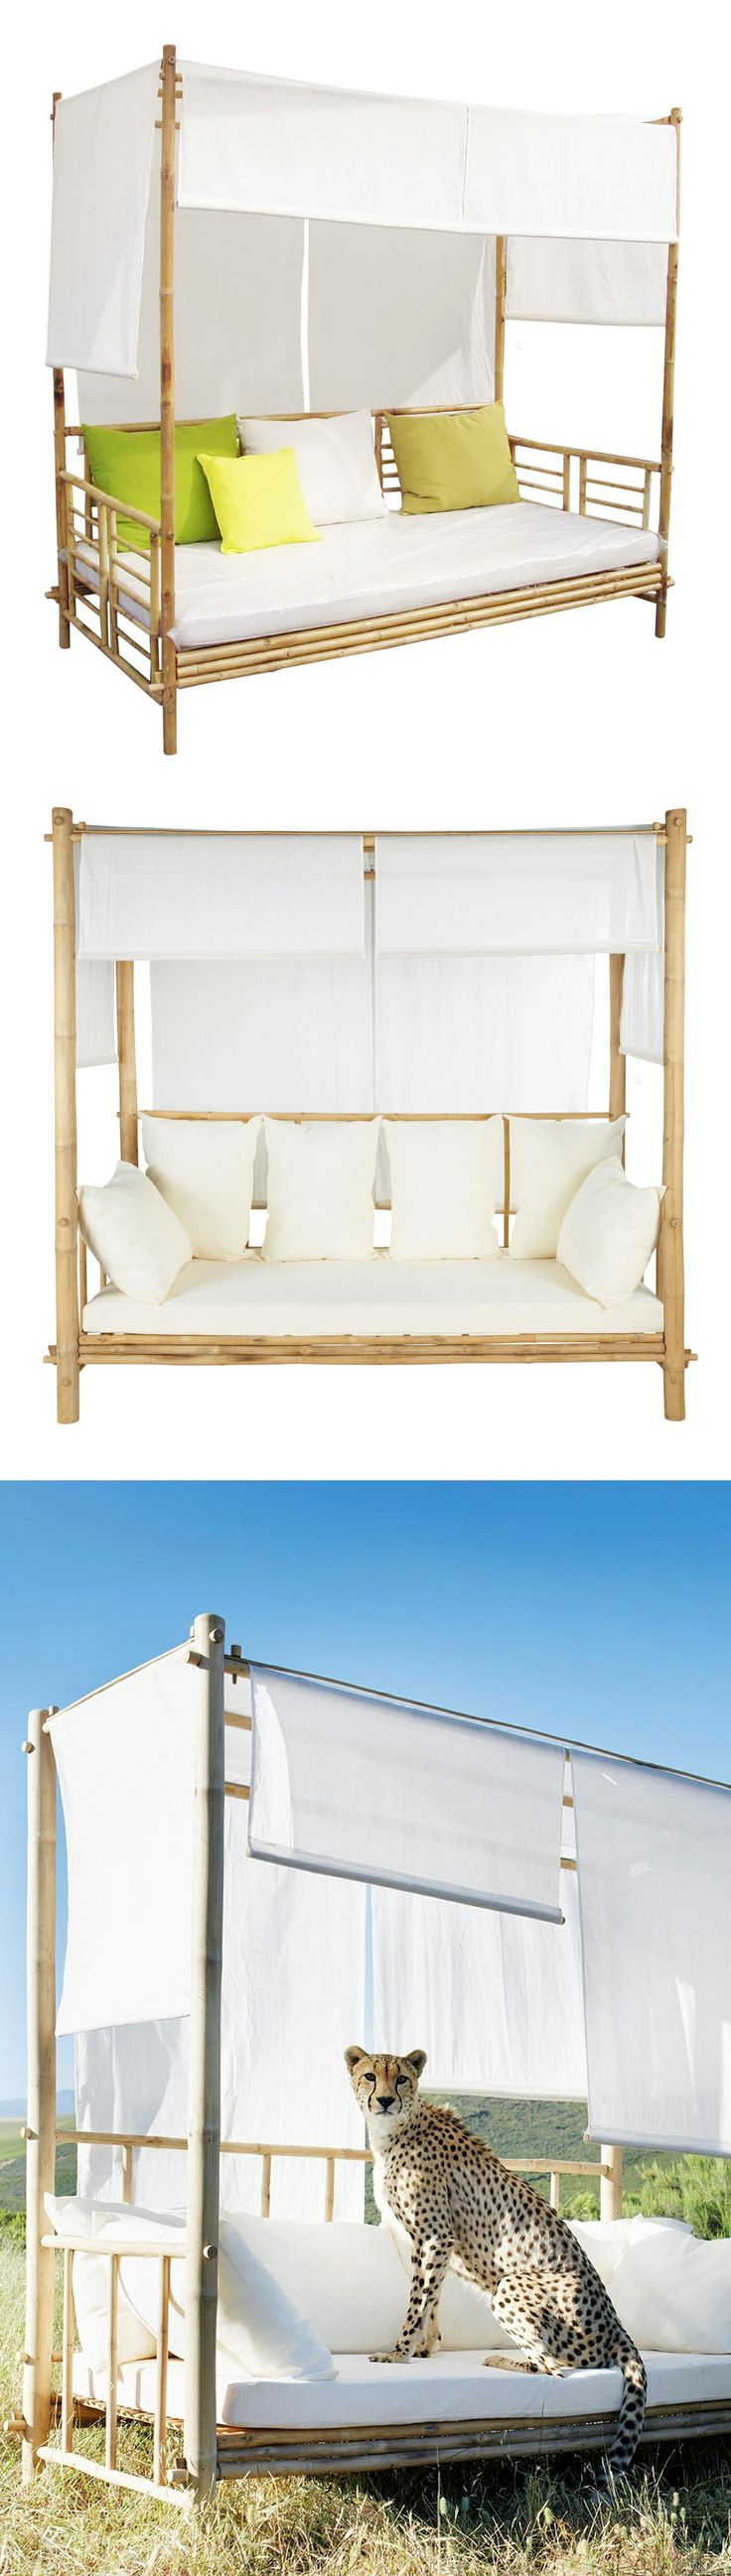 Outdoor canopy bamboo daybed* // (Note: *Cheetah not included) #furniture_design